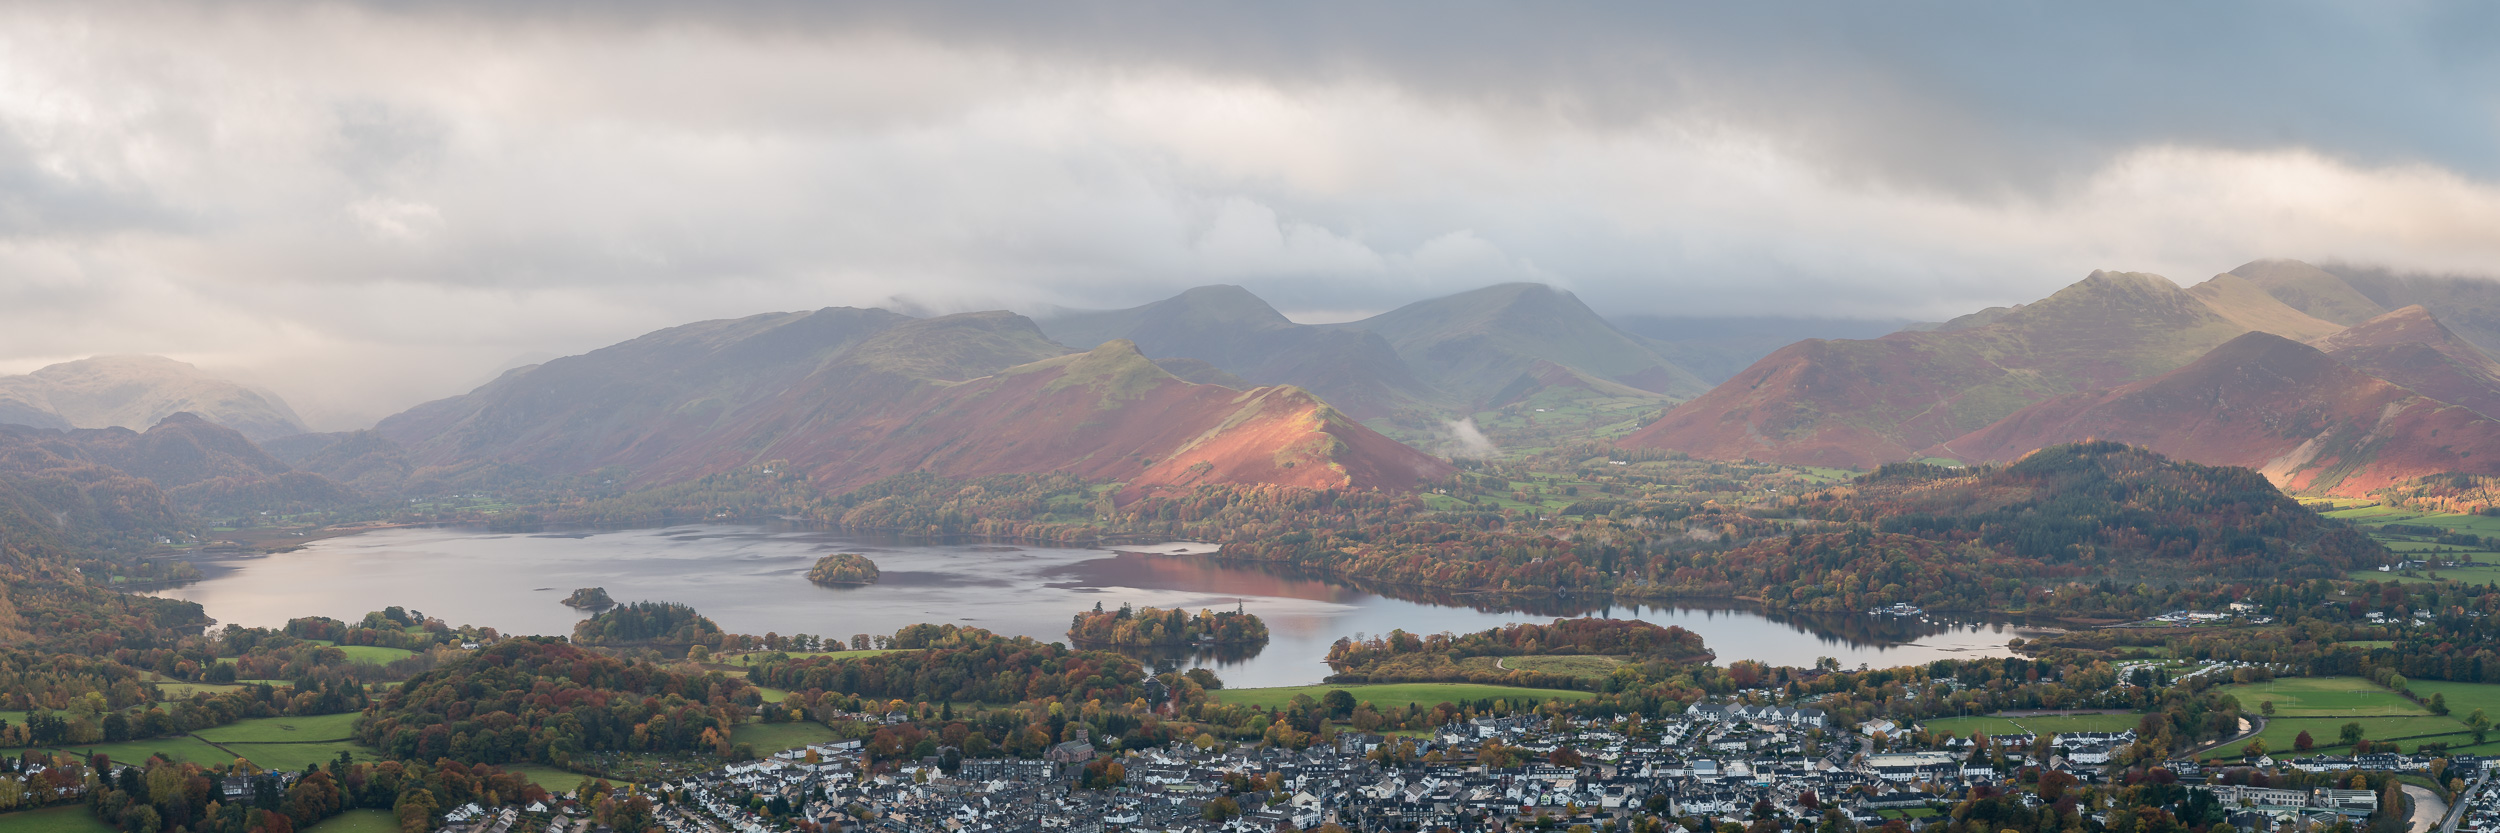 As time progressed some splashes of light started to appear on Cat Bells. This image is a 3:1 crop of a 9 vertical image panoramic stitch.